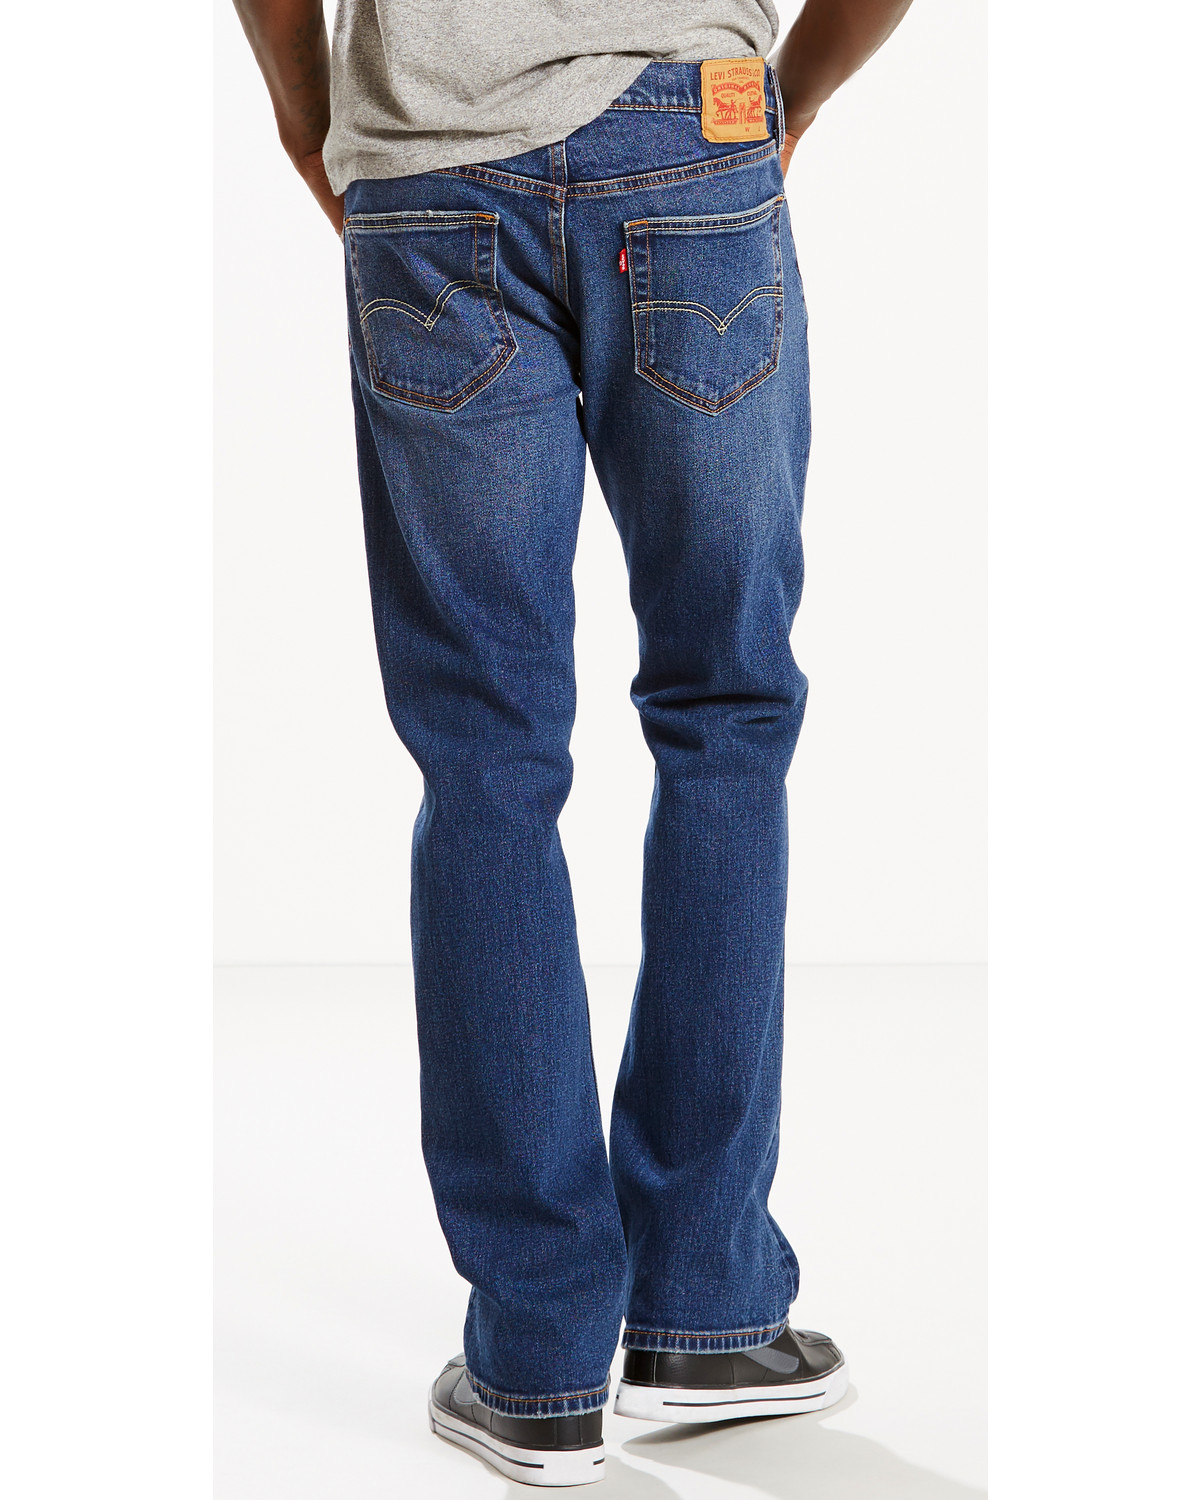 2469b4f6f7e Zoomed Image Levi's Men's 527 Slim Fit Jeans - Boot Cut , Indigo, ...